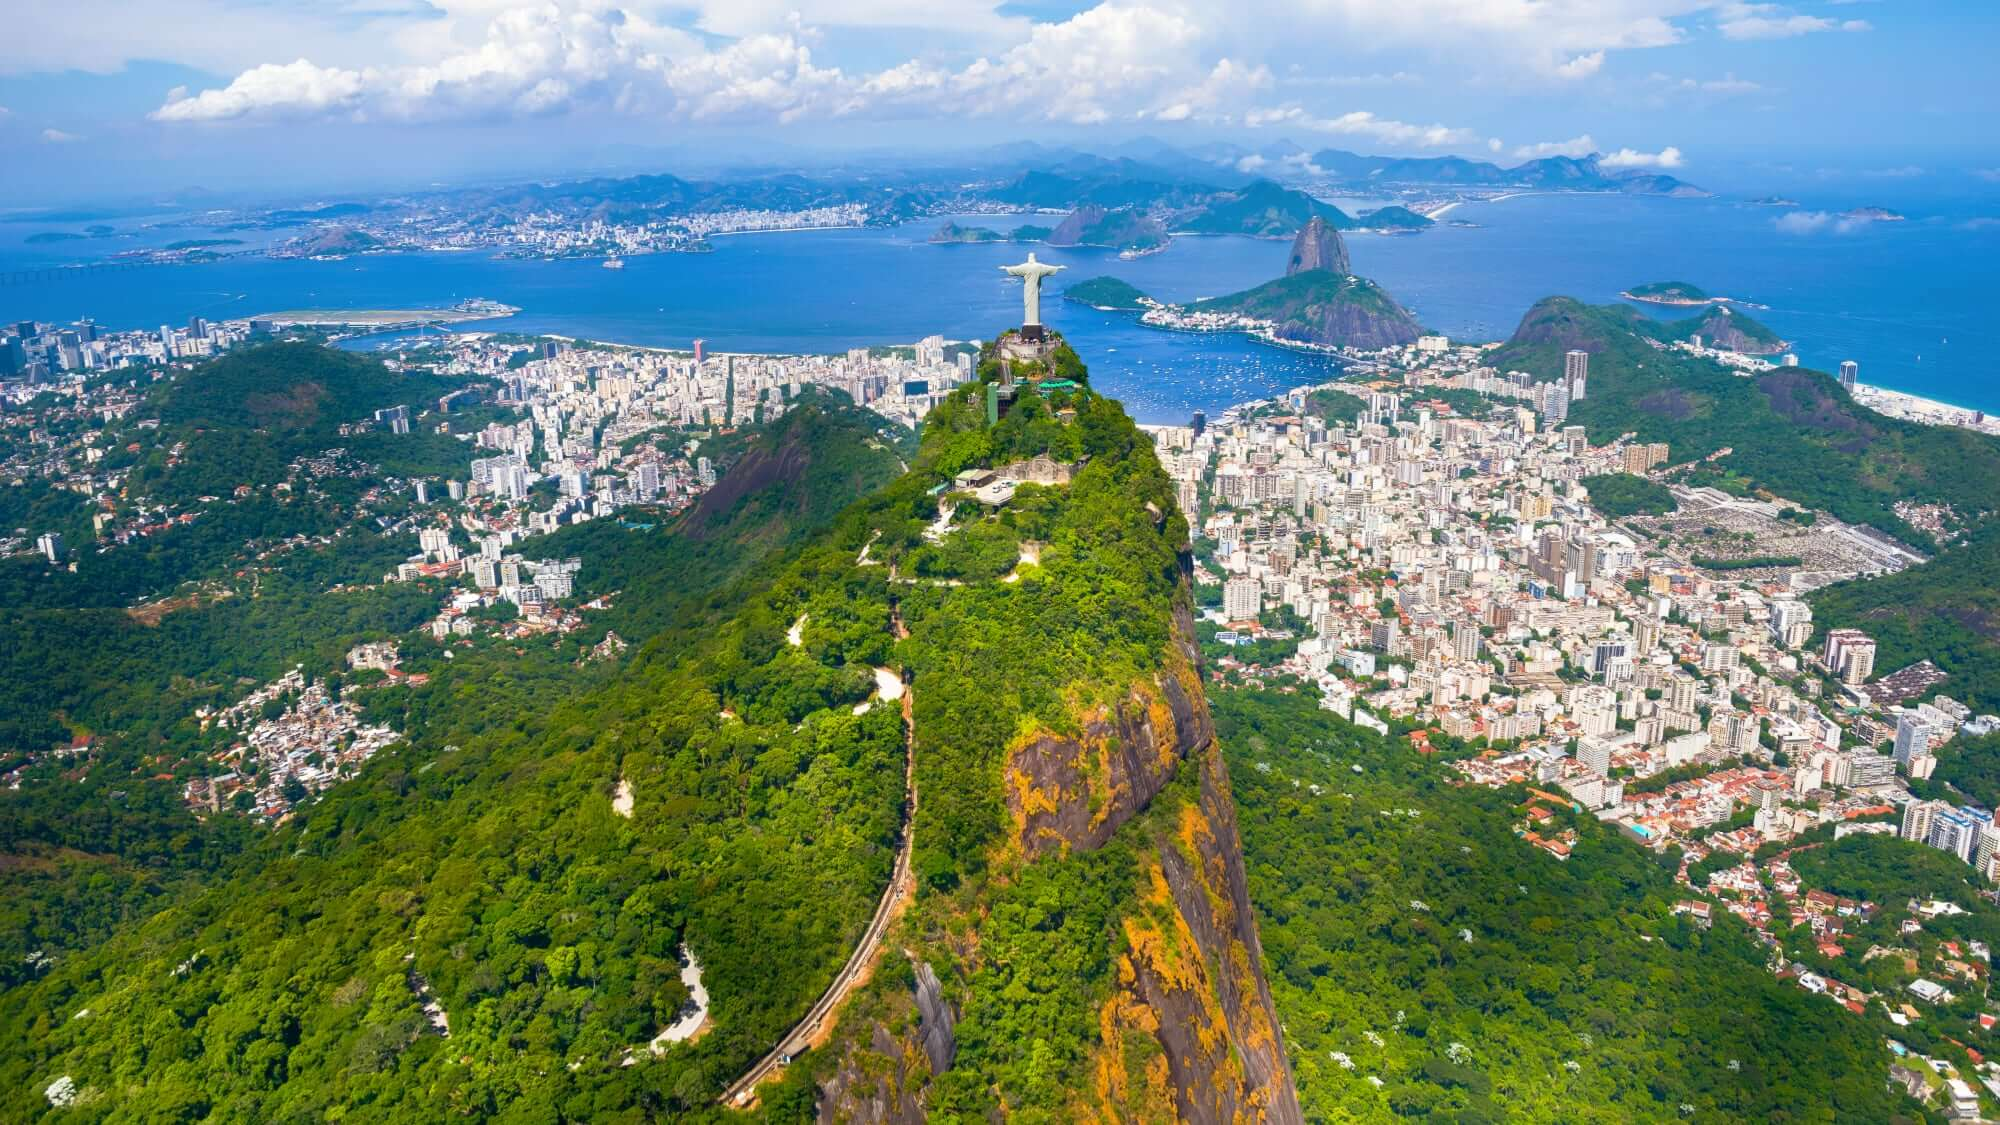 """Corcovado Mountain with the """"Christ the Redeemer"""" Statue and the railway line in front"""